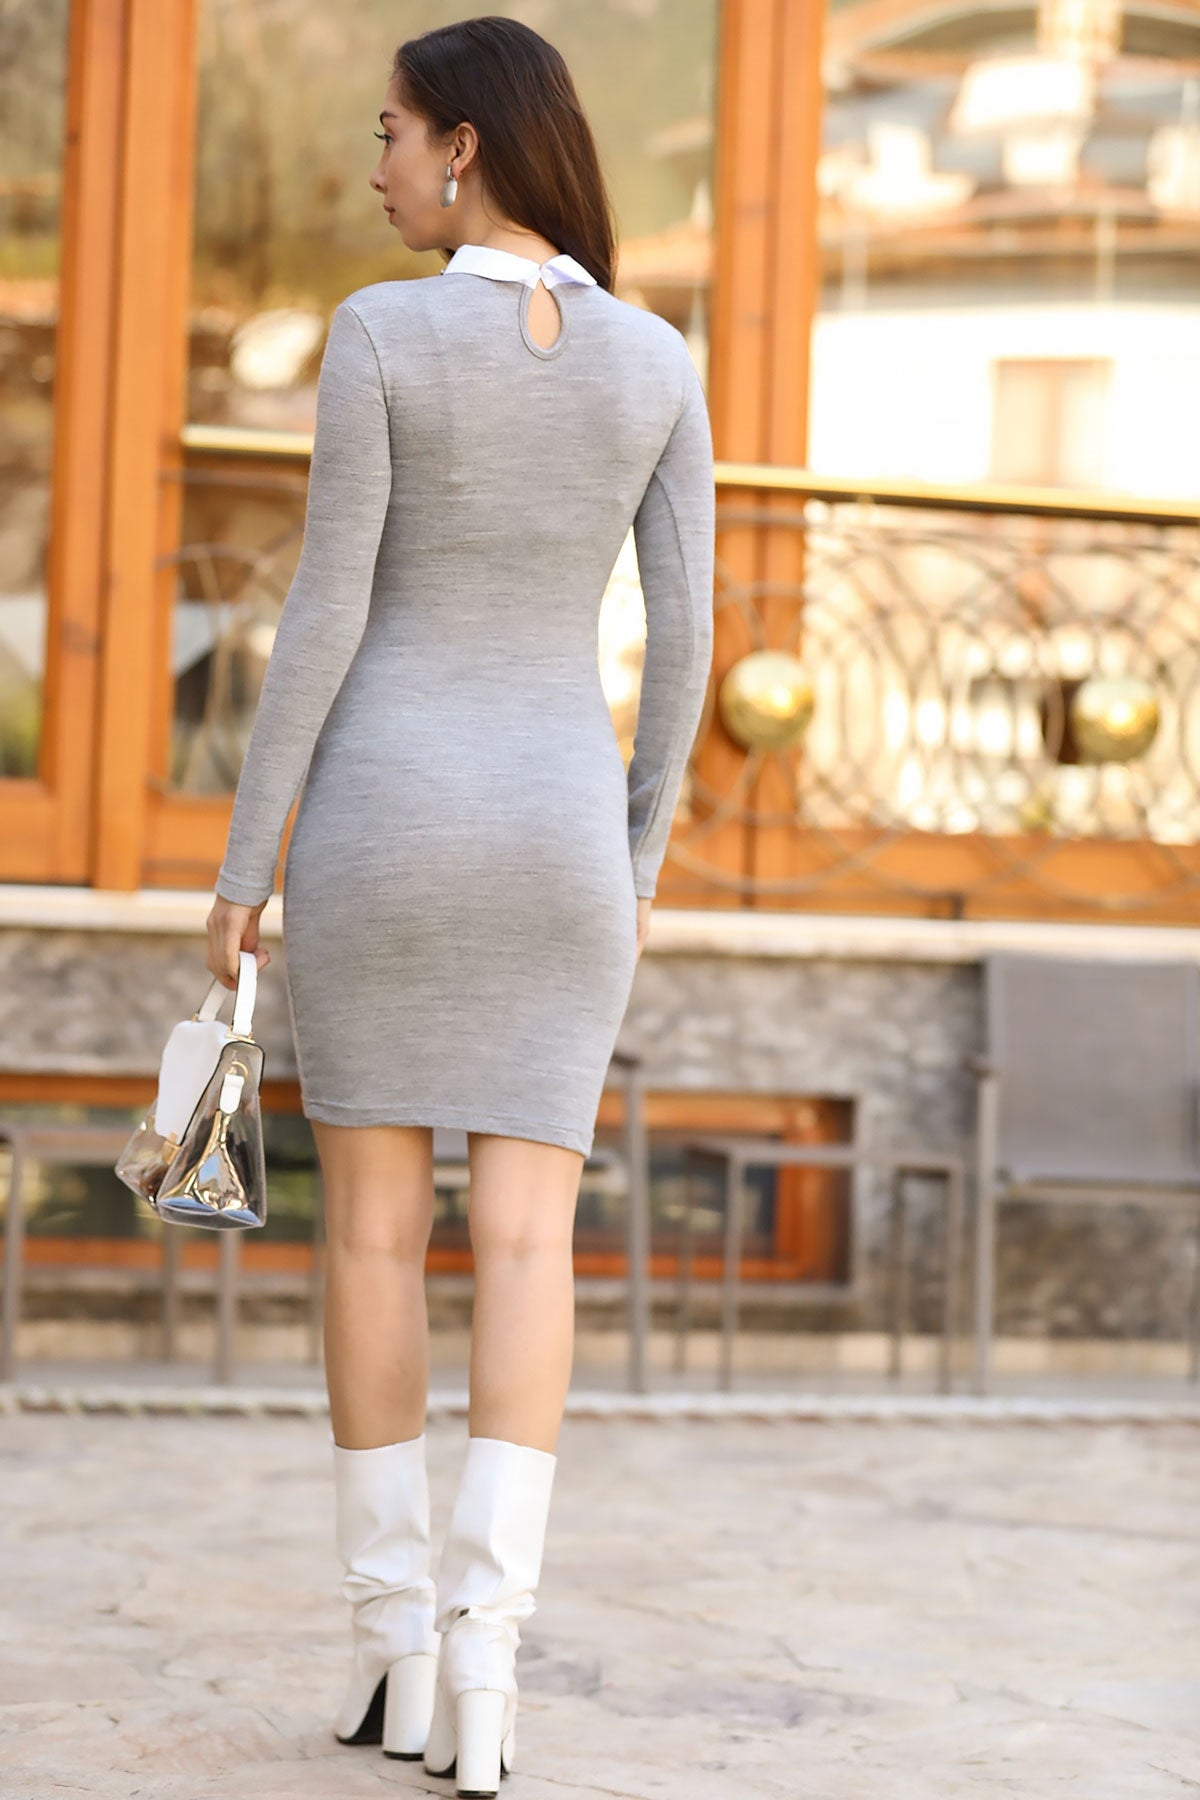 Women's Short Pearled Grey Dress